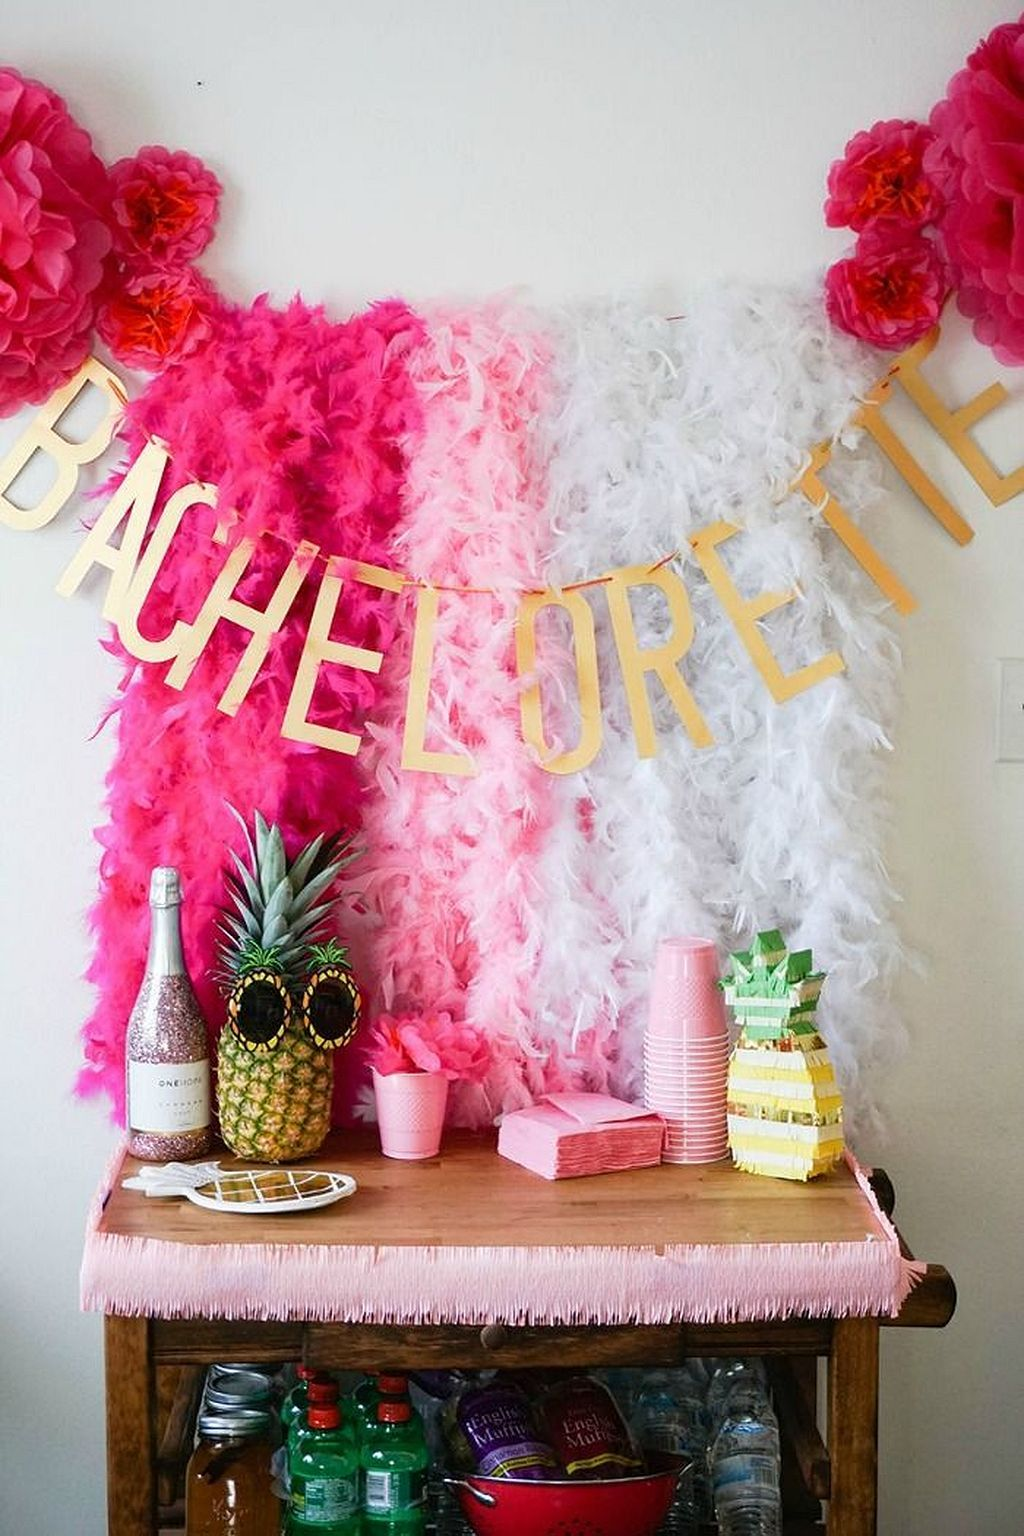 Stunning 60+ Bachelorette Party Decor Ideas //weddmagz.com/60- bachelorette-party-decor-ideas/ & 60+ Bachelorette Party Decor Ideas | Pinterest | Bachelorette ...